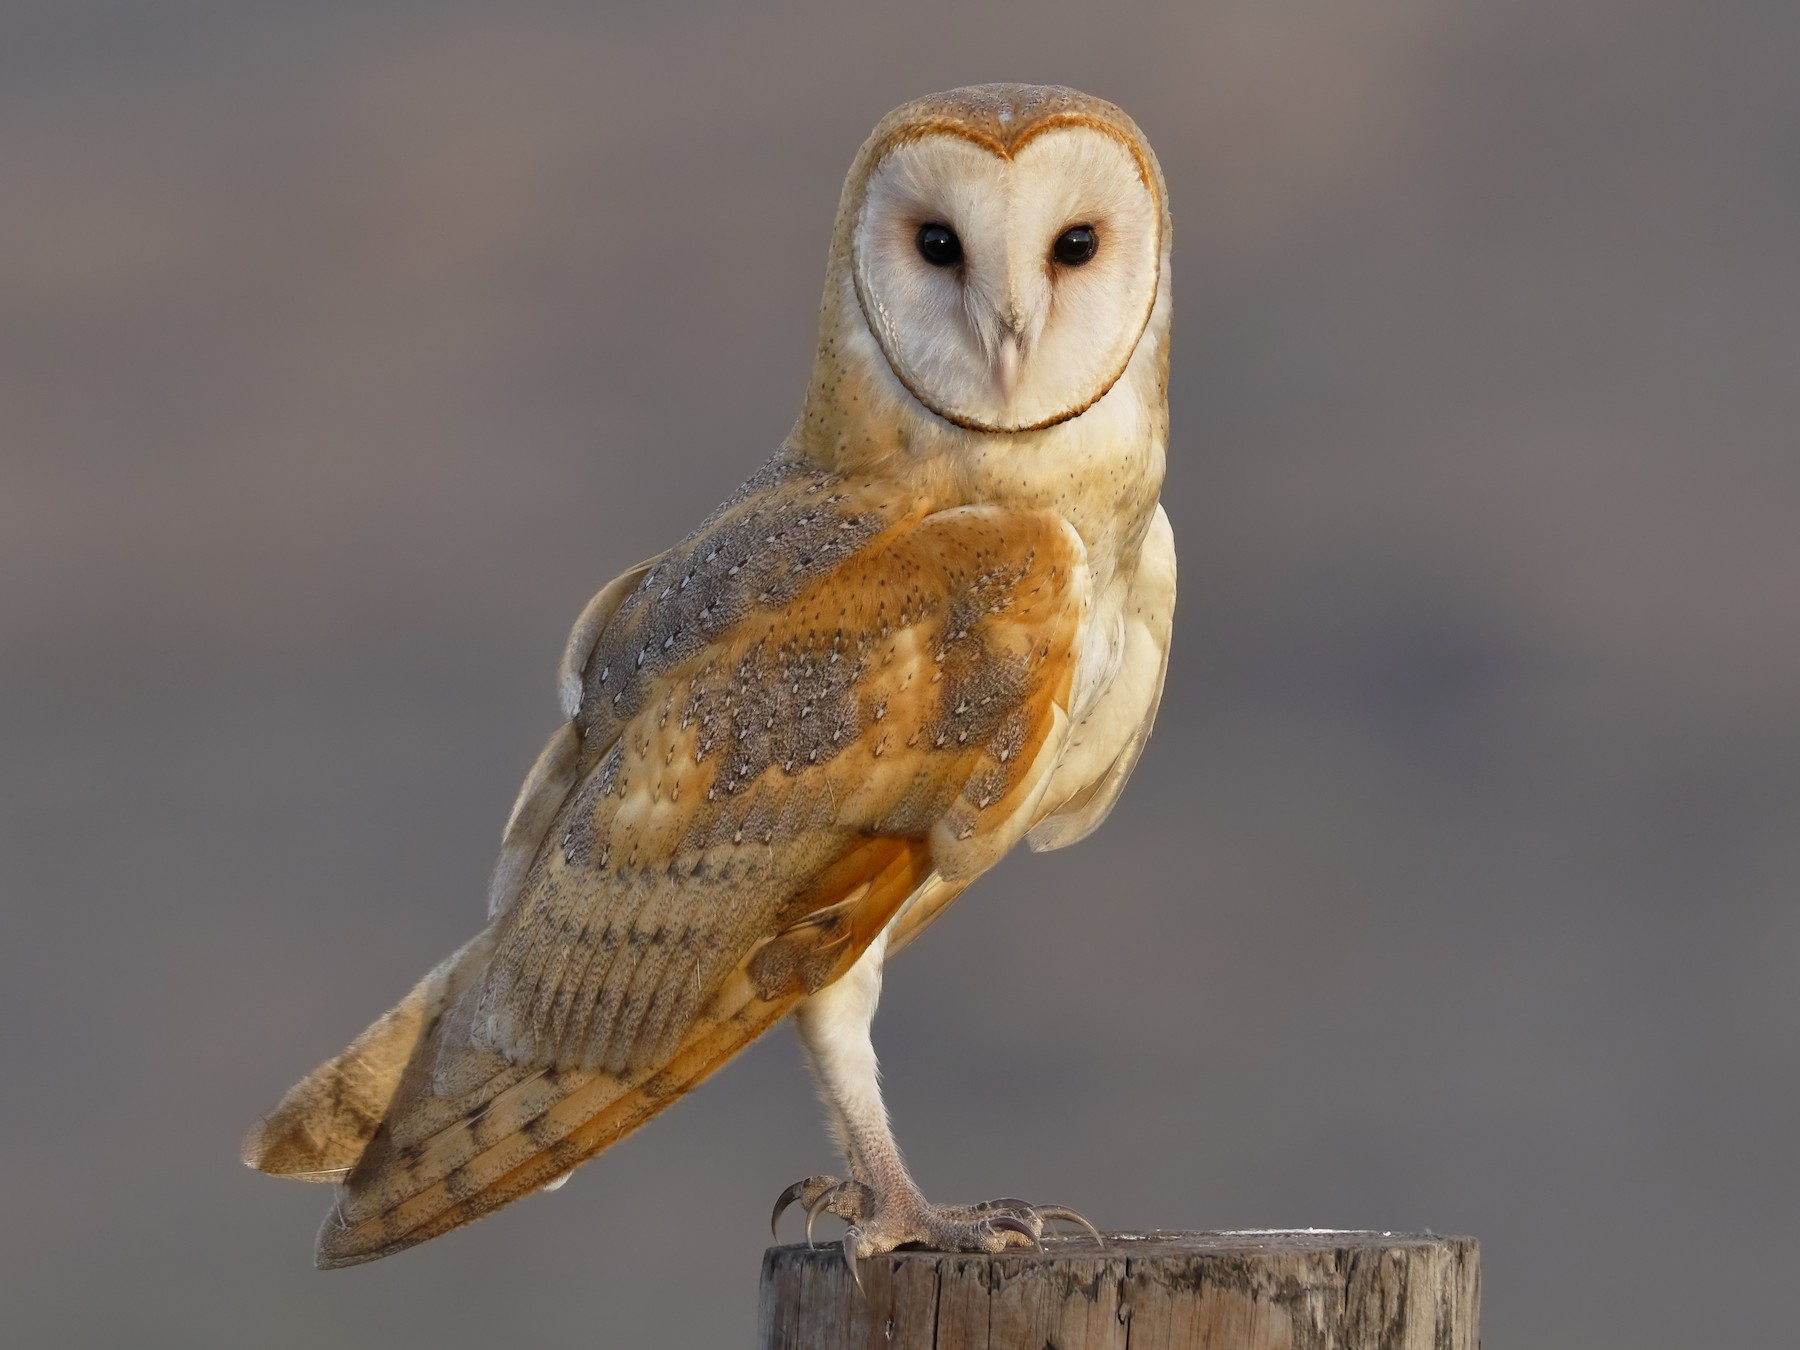 Barn Owl - Sharif Uddin